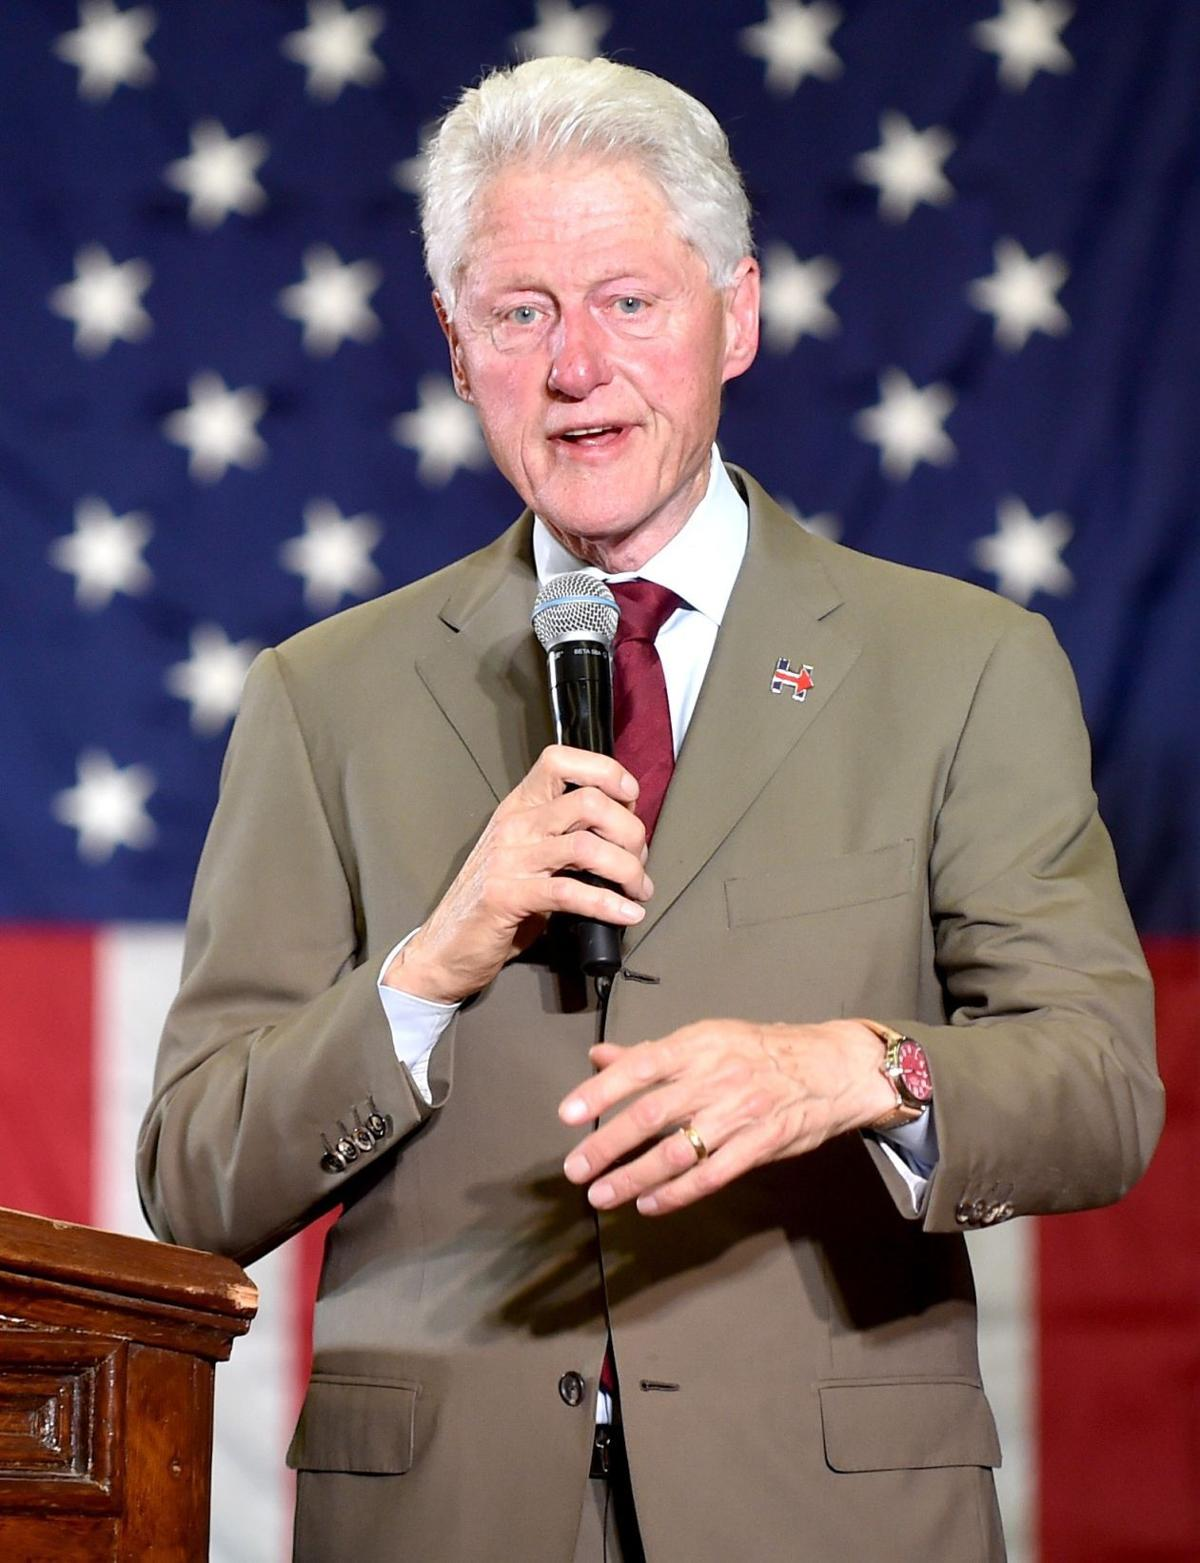 Bill Clinton to Billings Hillary will build bridges while Trump